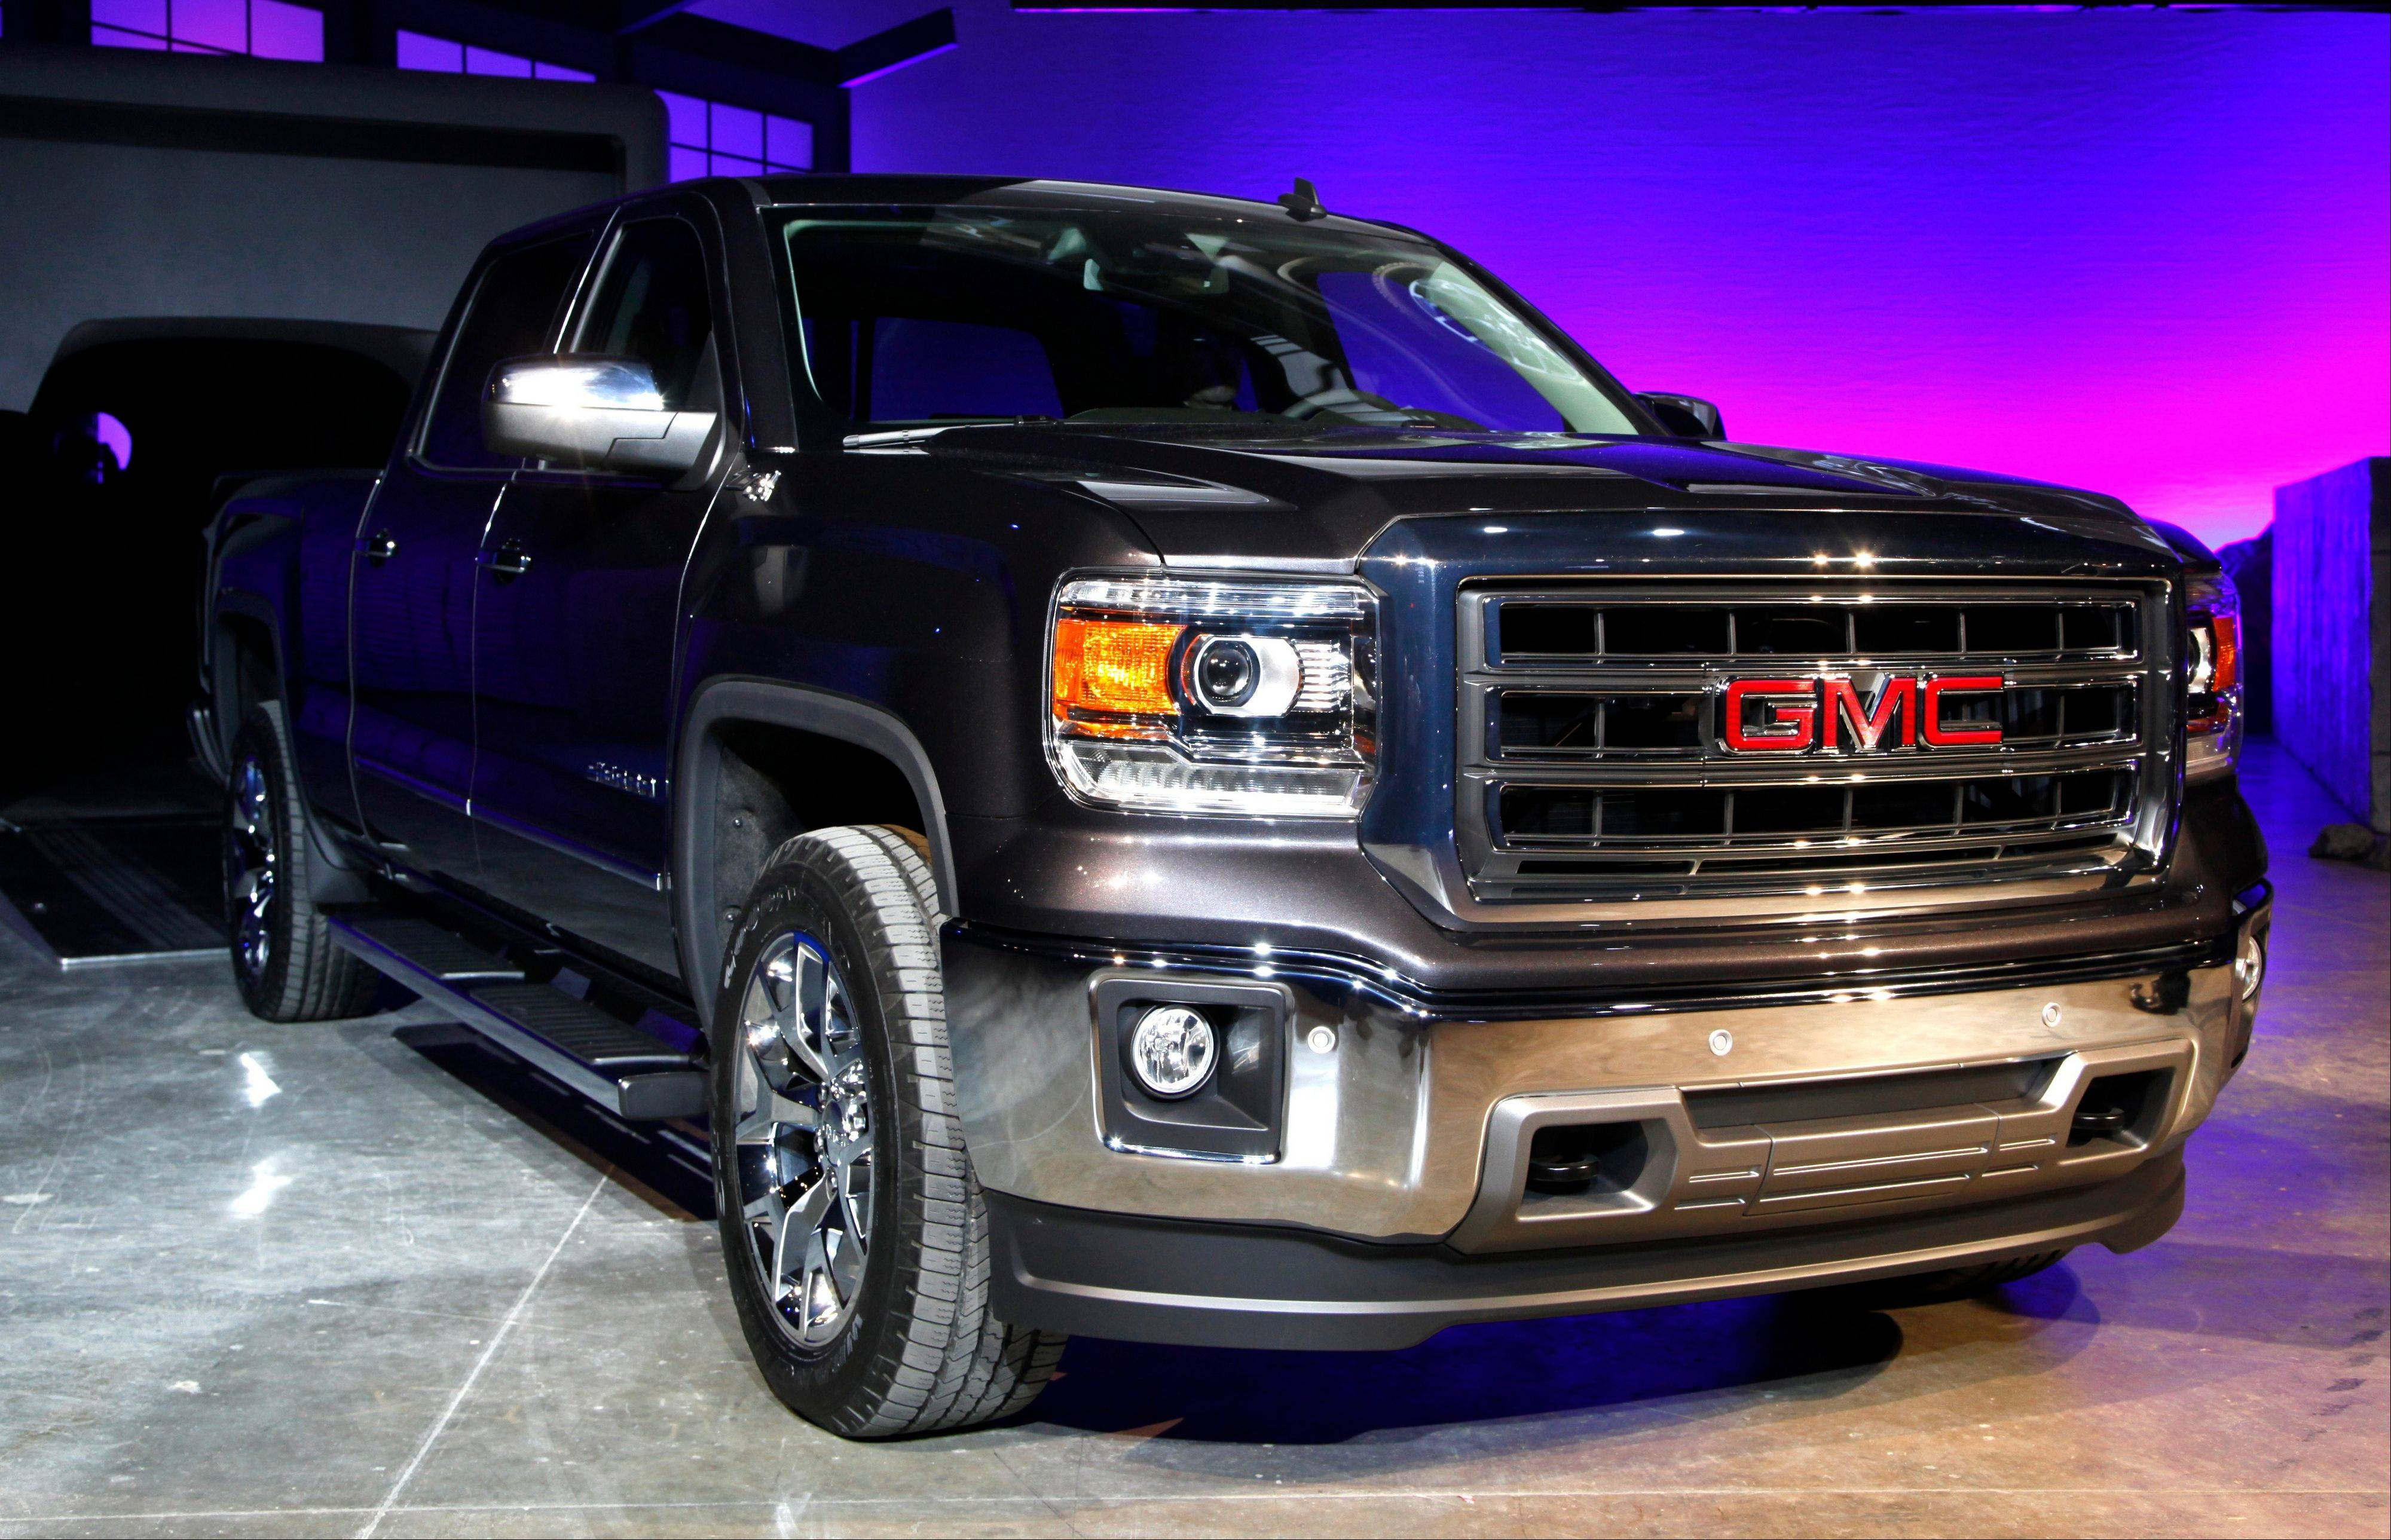 The 2014 GMC Sierra debuts in Pontiac, Mich., Thursday, Dec. 13, 2012. General Motors unveiled a new versions of its top-selling Chevrolet Silverado and GMC Sierra on Thursday Dec. 13, 2012. The 2014 models will go on sale by early spring or late summer. The models roll into a market where truck sales are growing after a five-year slump.